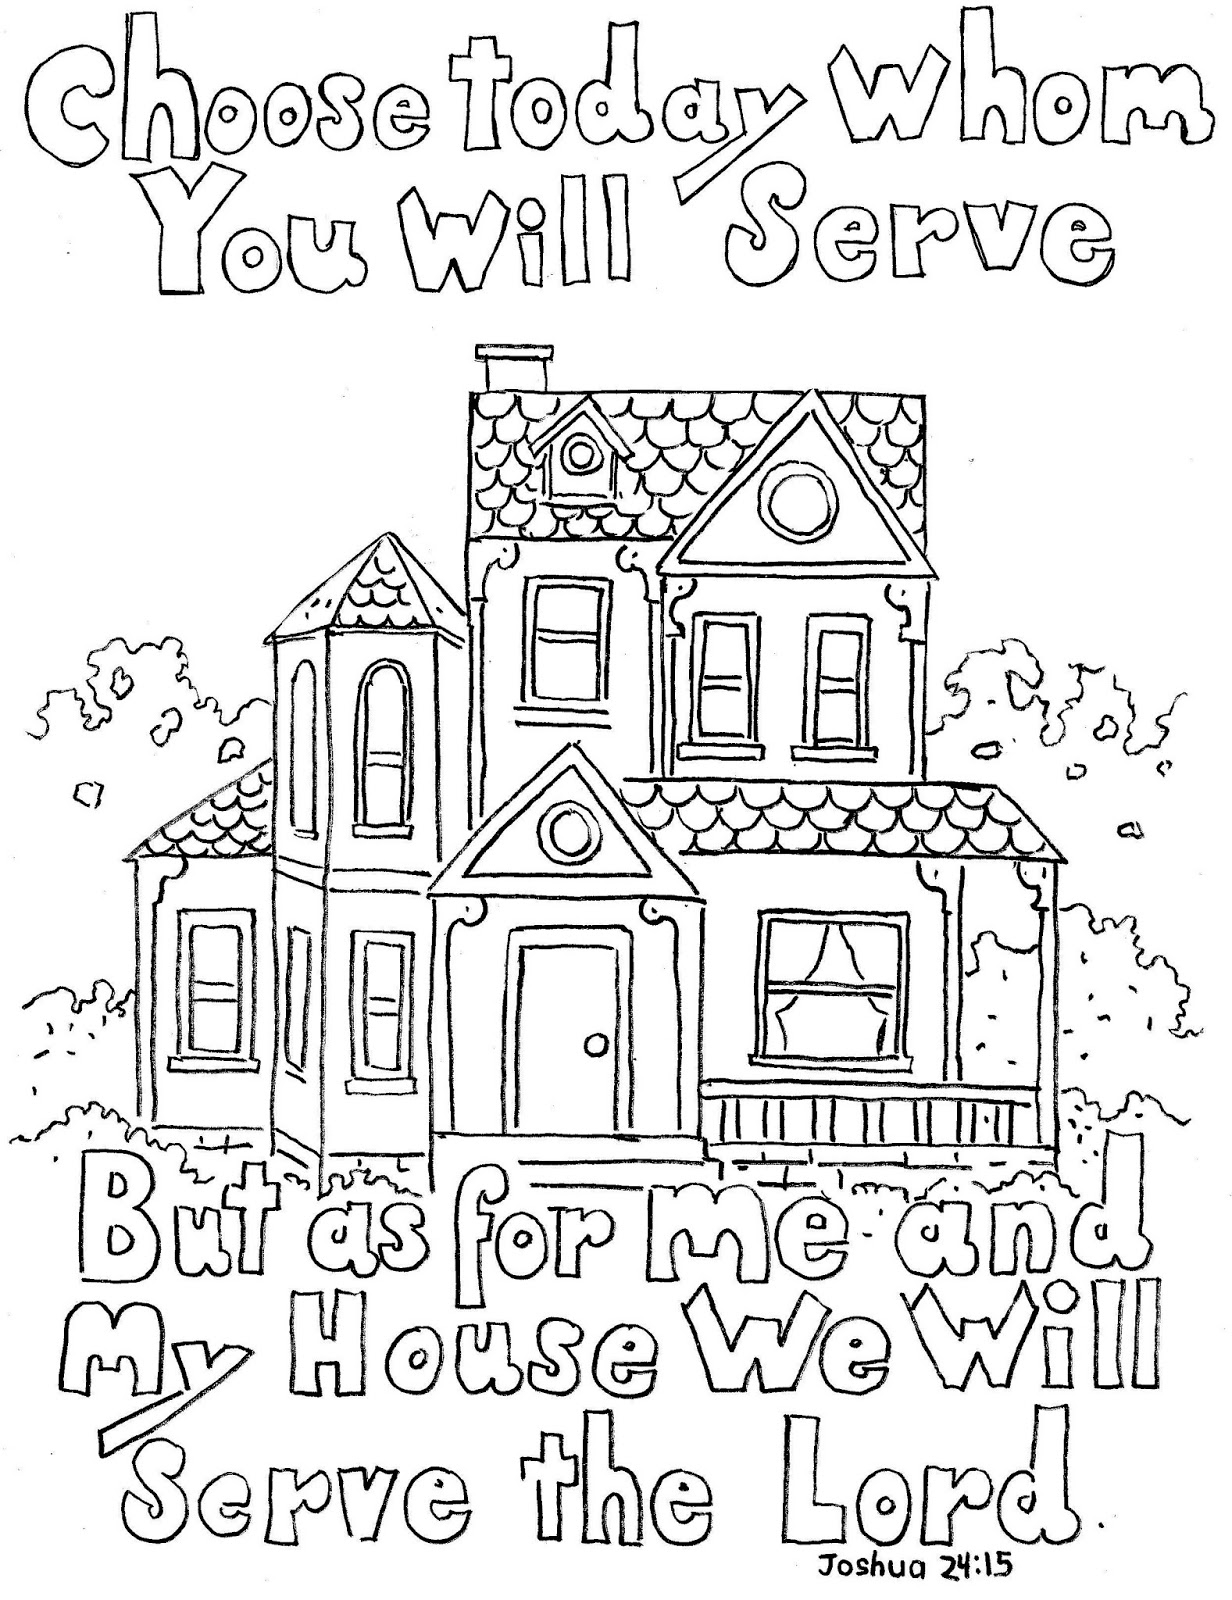 Obey the Lord Coloring Page Download Of Printable Puter Coloring Pages Collection